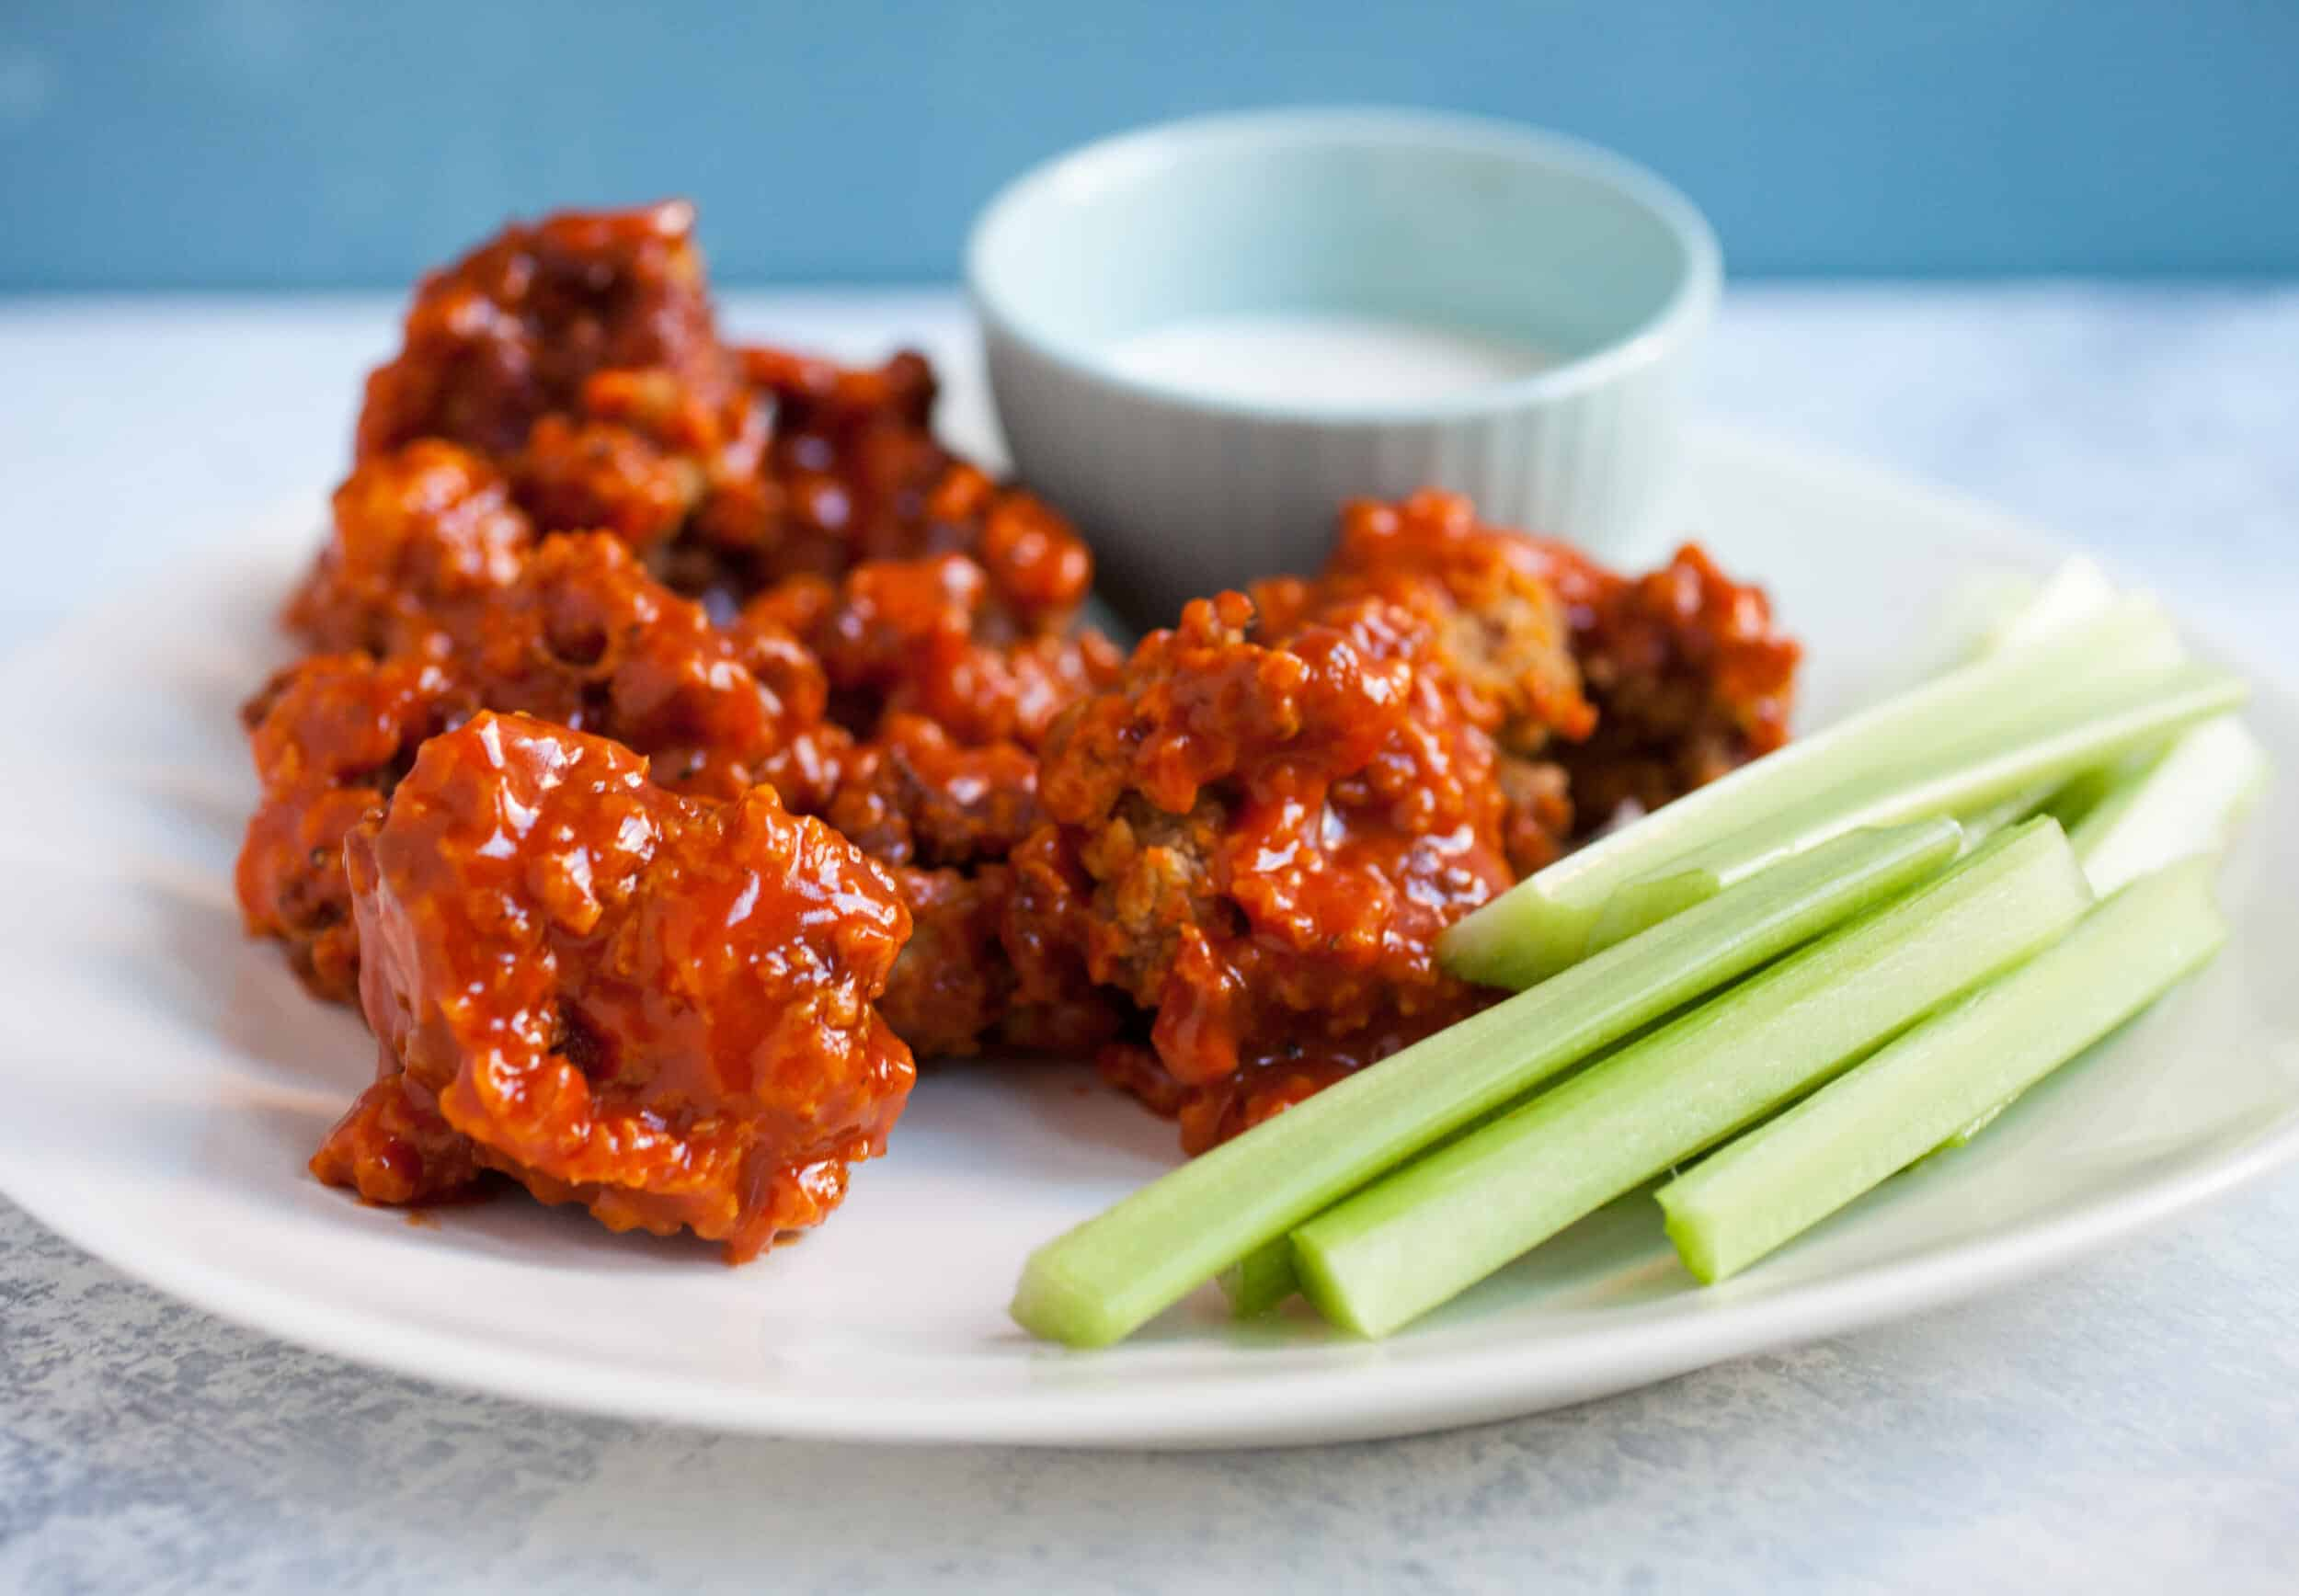 Real Boneless Chicken Wings: Ditch the boneless skinless chicken breasts and learn how to make real boneless wings, which yes, involves some work. The results are incredible though! | macheesmo.com